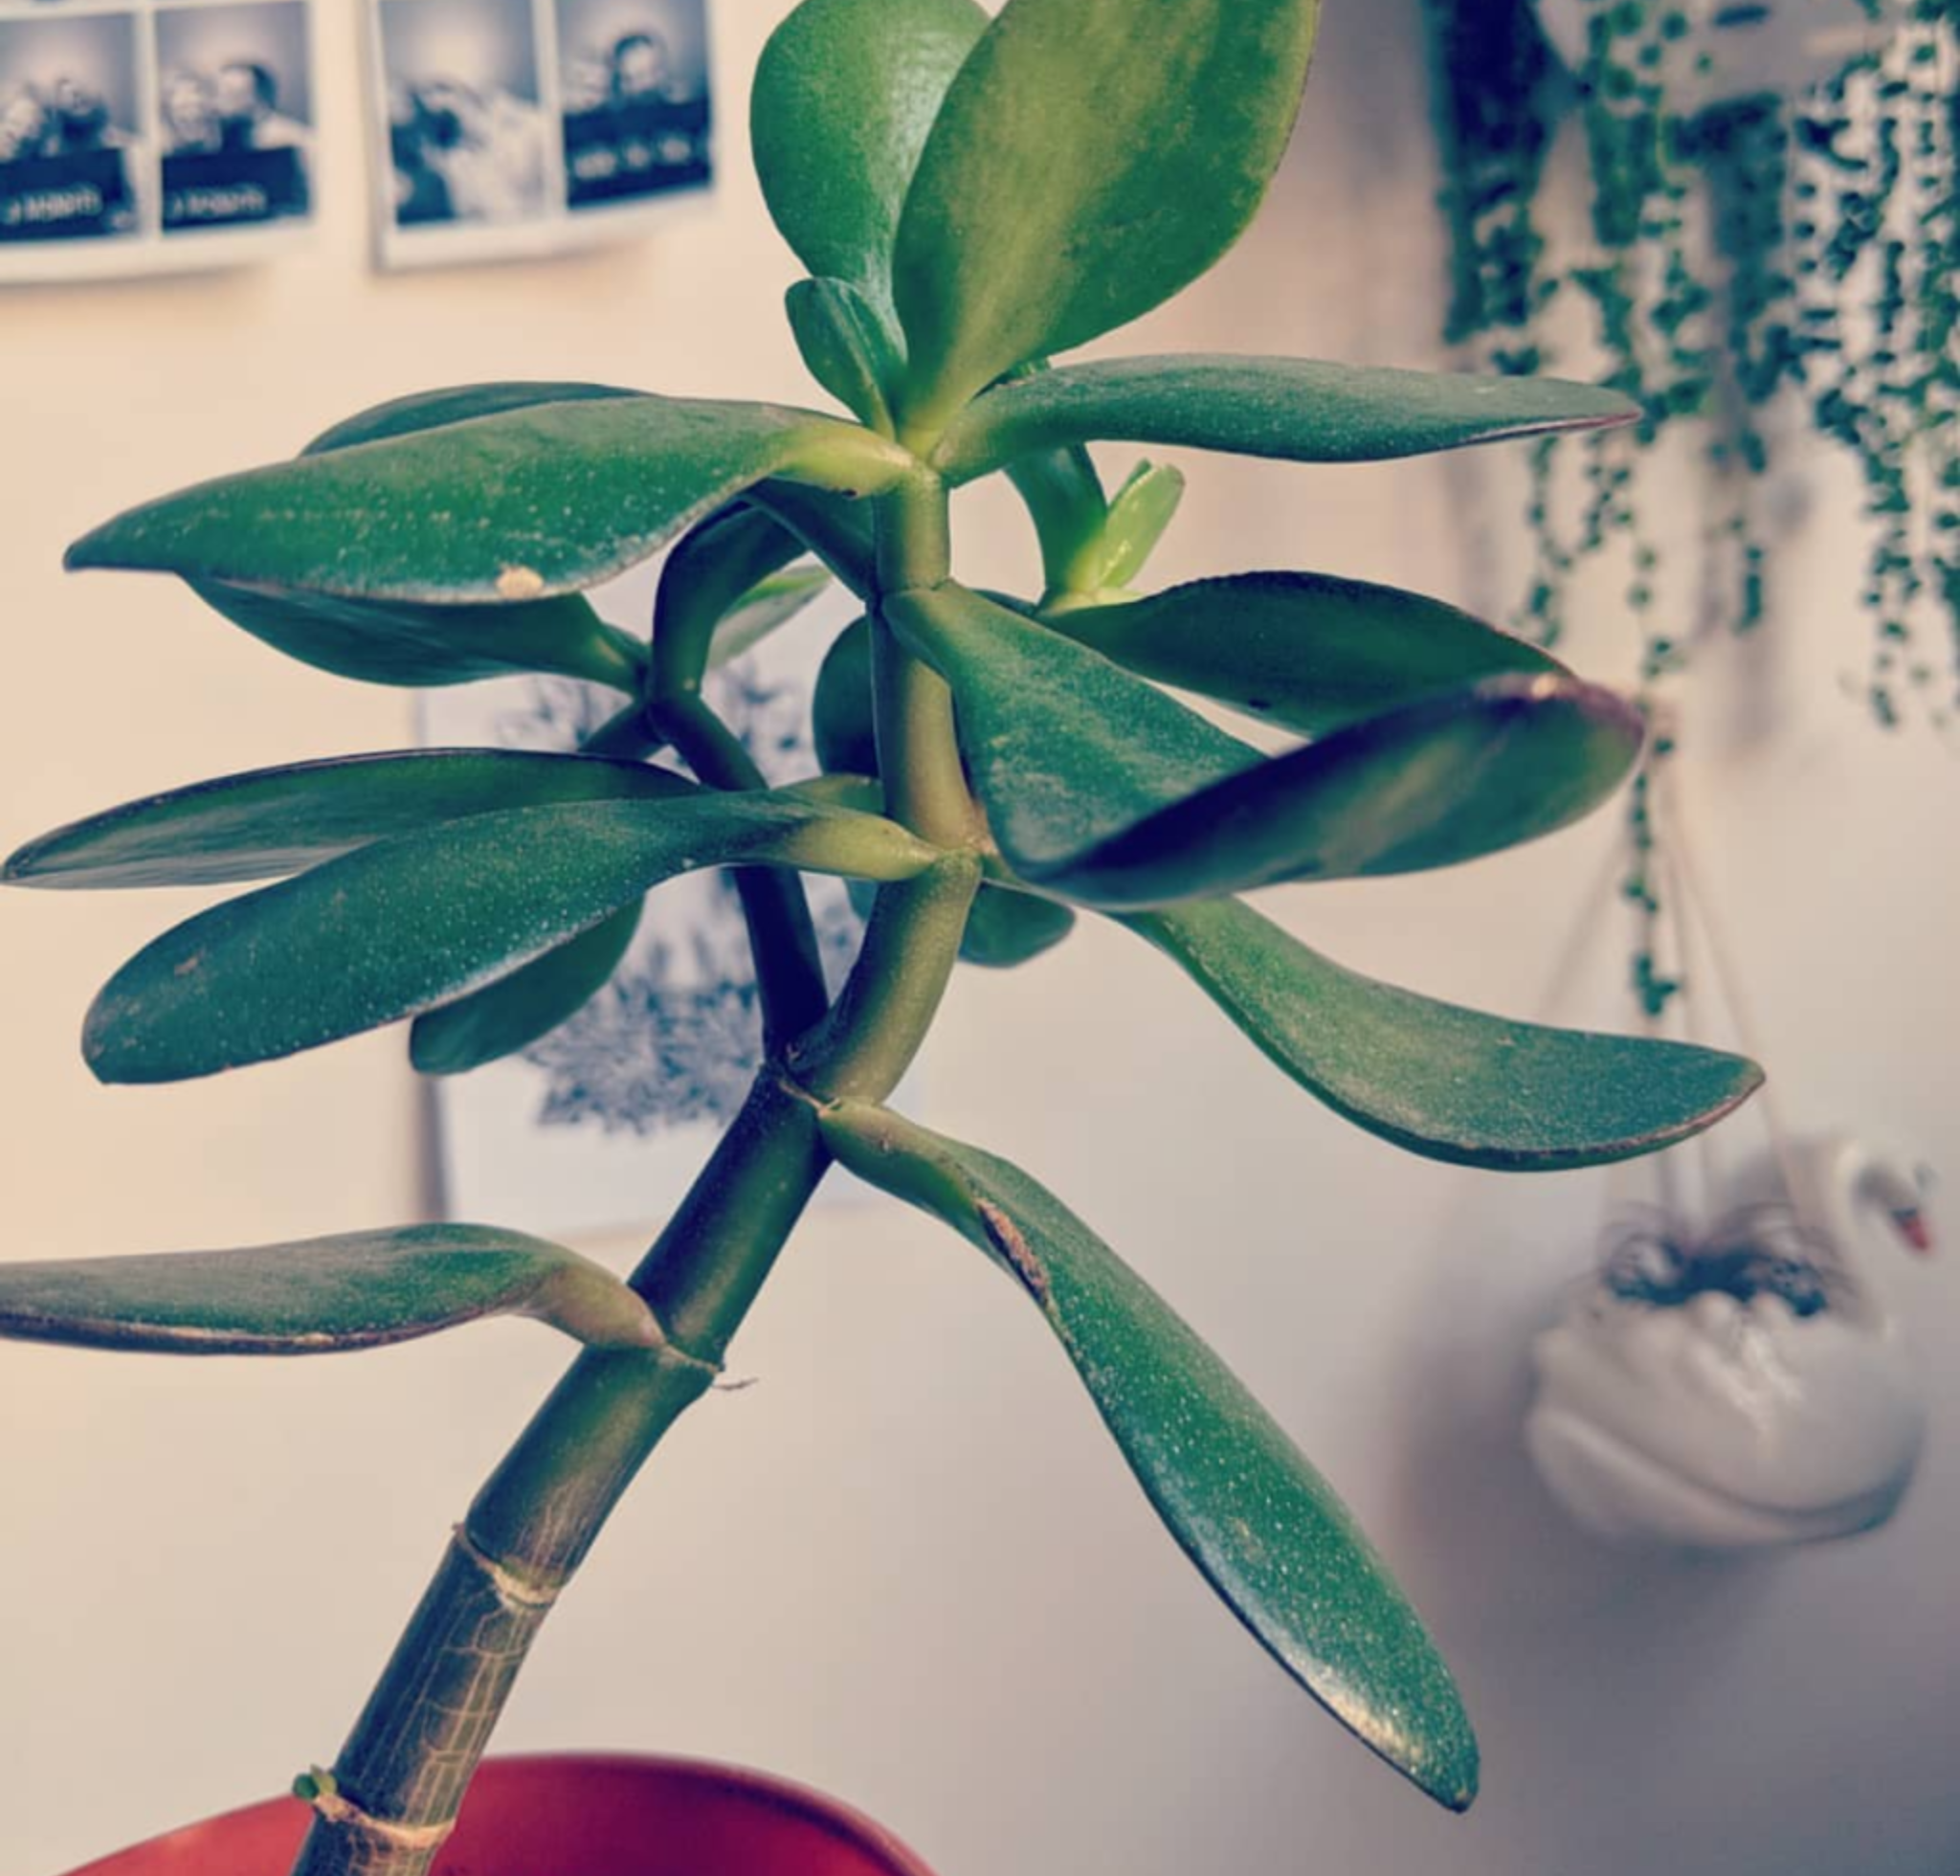 jade plant house care guide